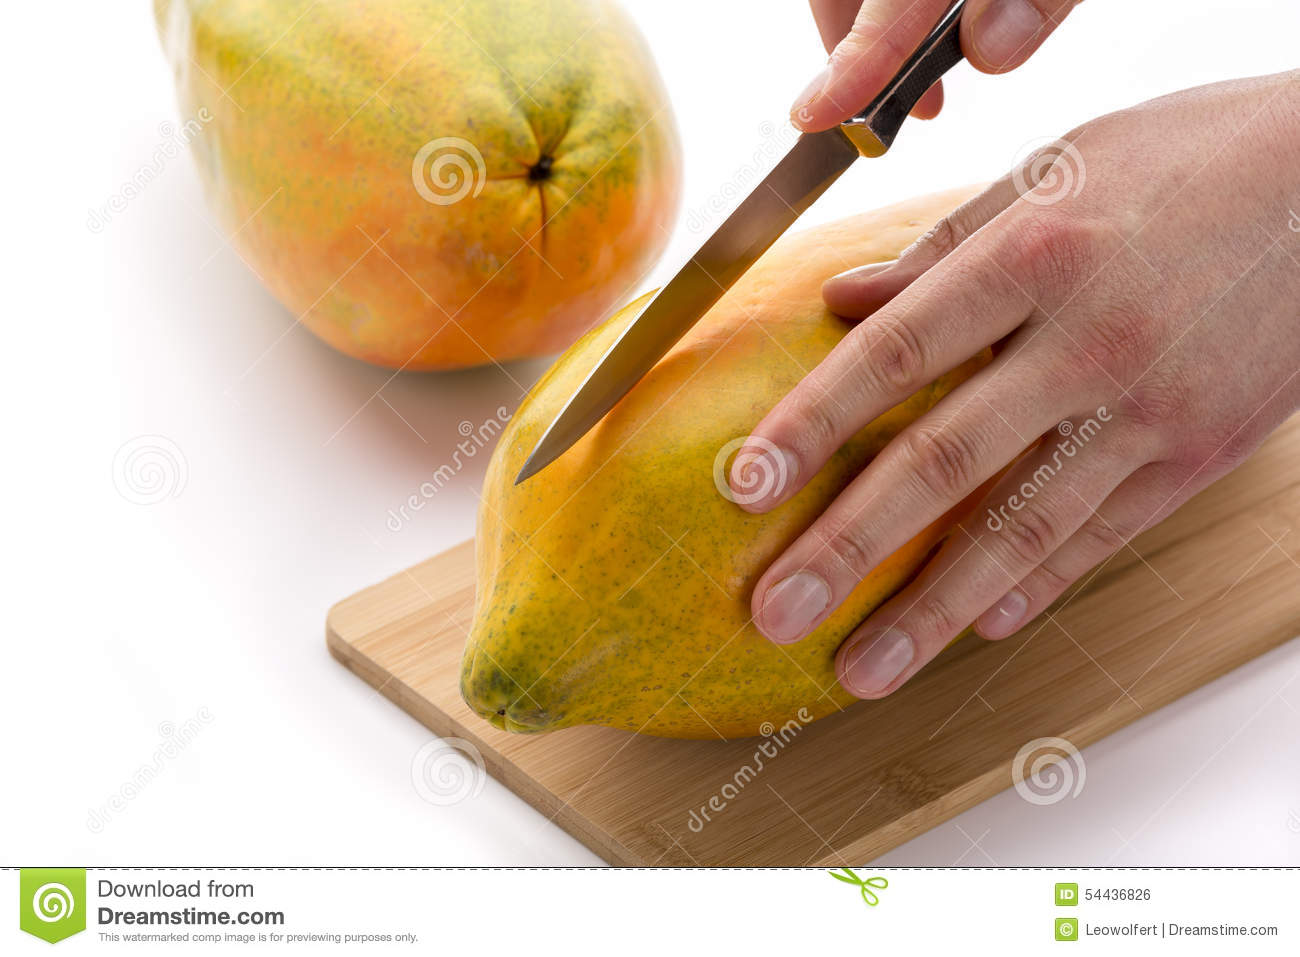 how to treat knife cut